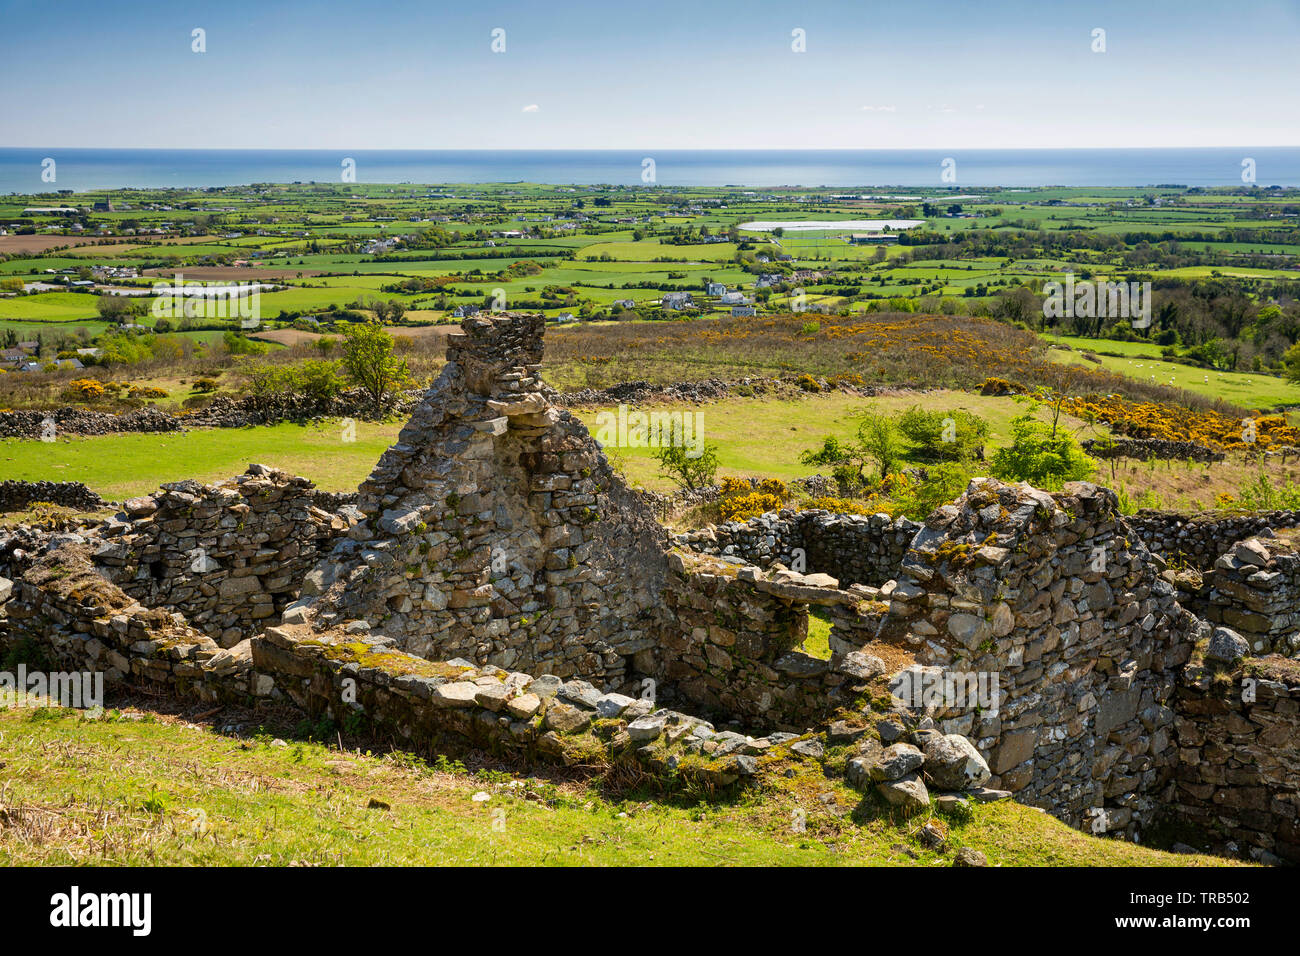 Ireland, Co Louth, Cooley Peninsula, Rooskey, ruins of house in abandoned pre-famine village overlooking Carlingford Lough - Stock Image